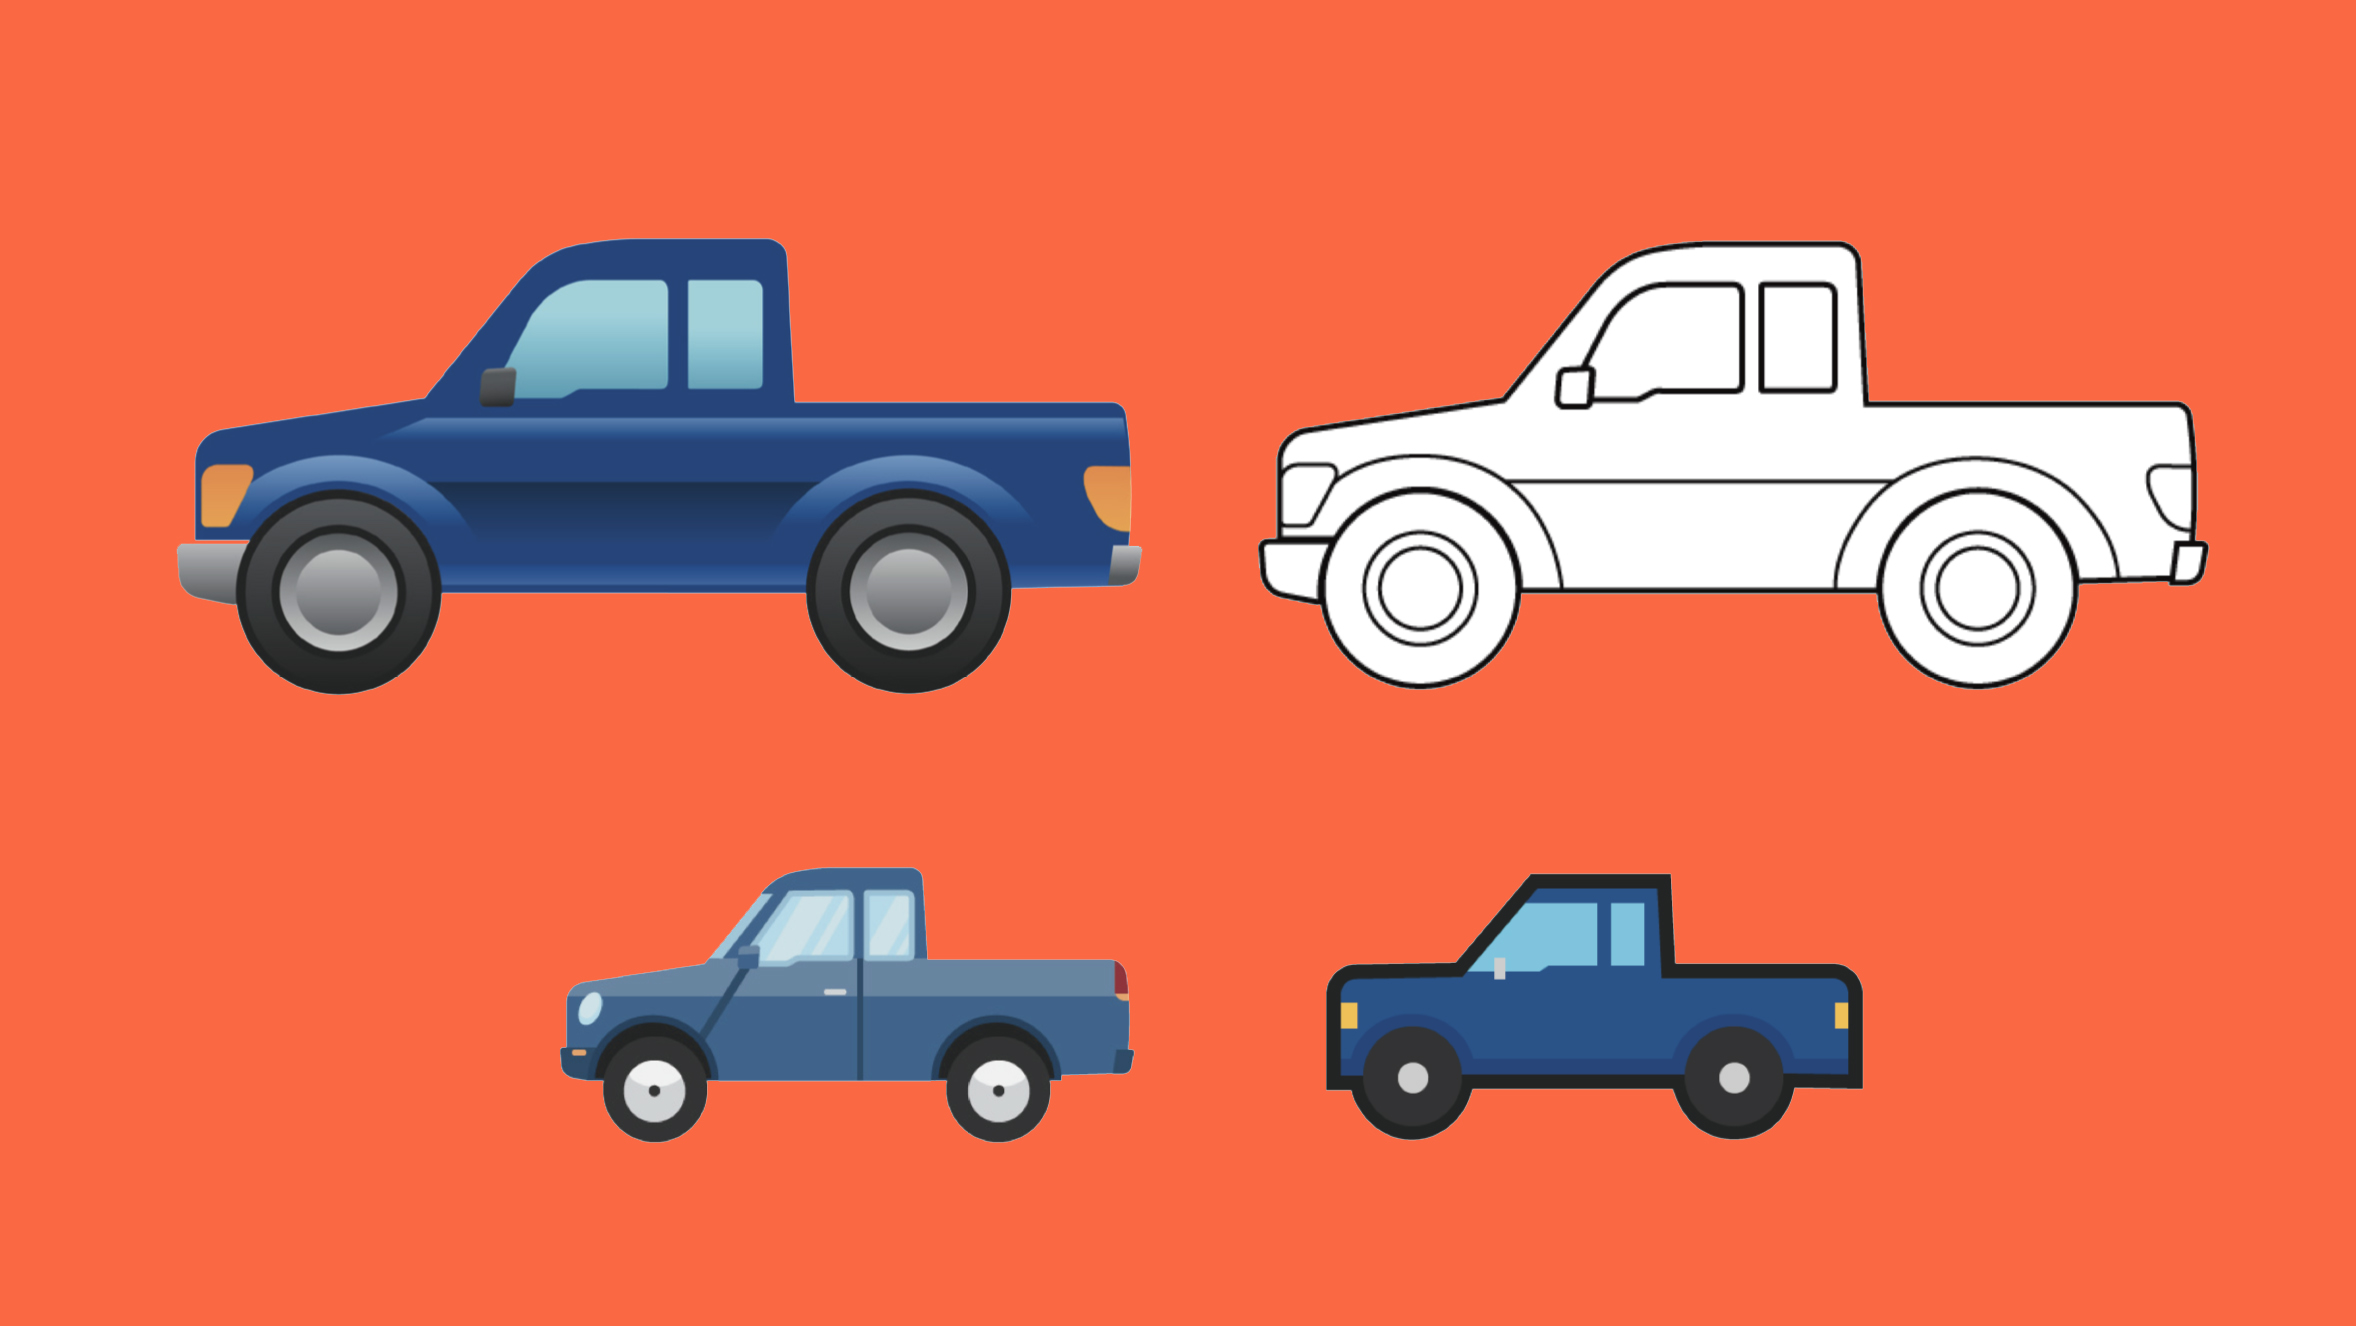 Image from  https://gizmodo.com/ford-secretly-created-the-new-pickup-emoji-because-noth-1836446445